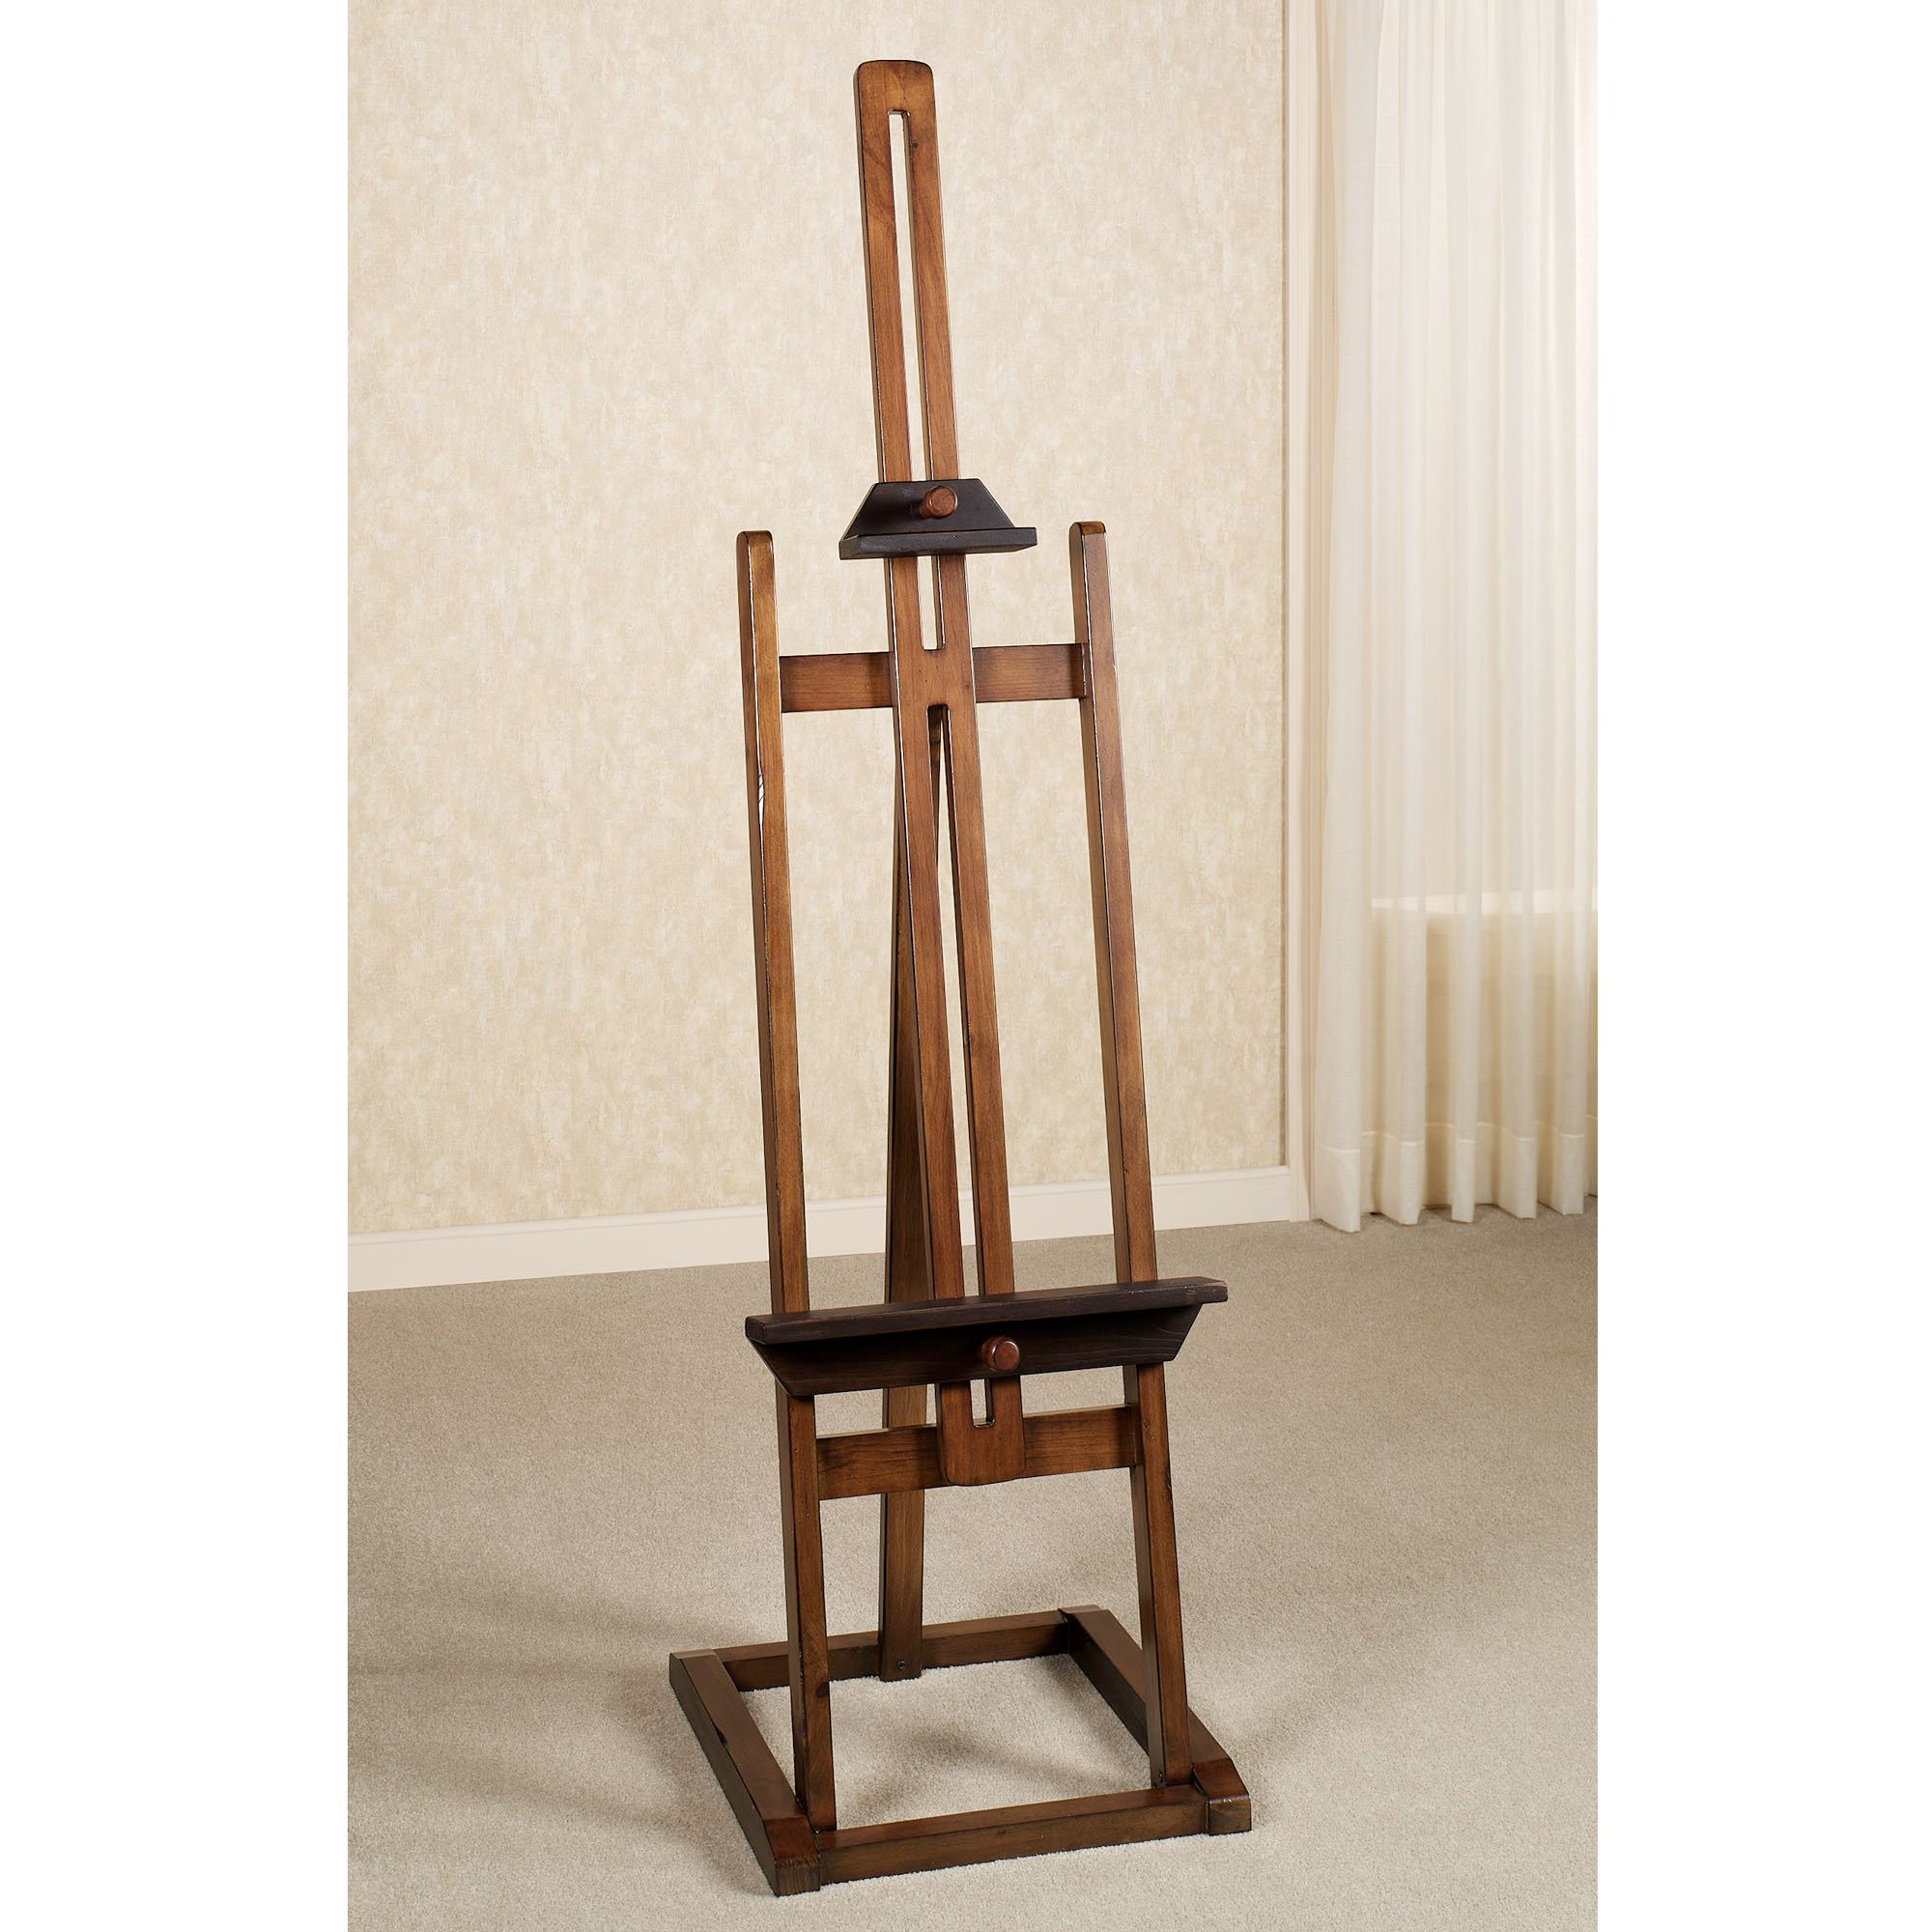 Artisana Wood Display Easel Floor Stand